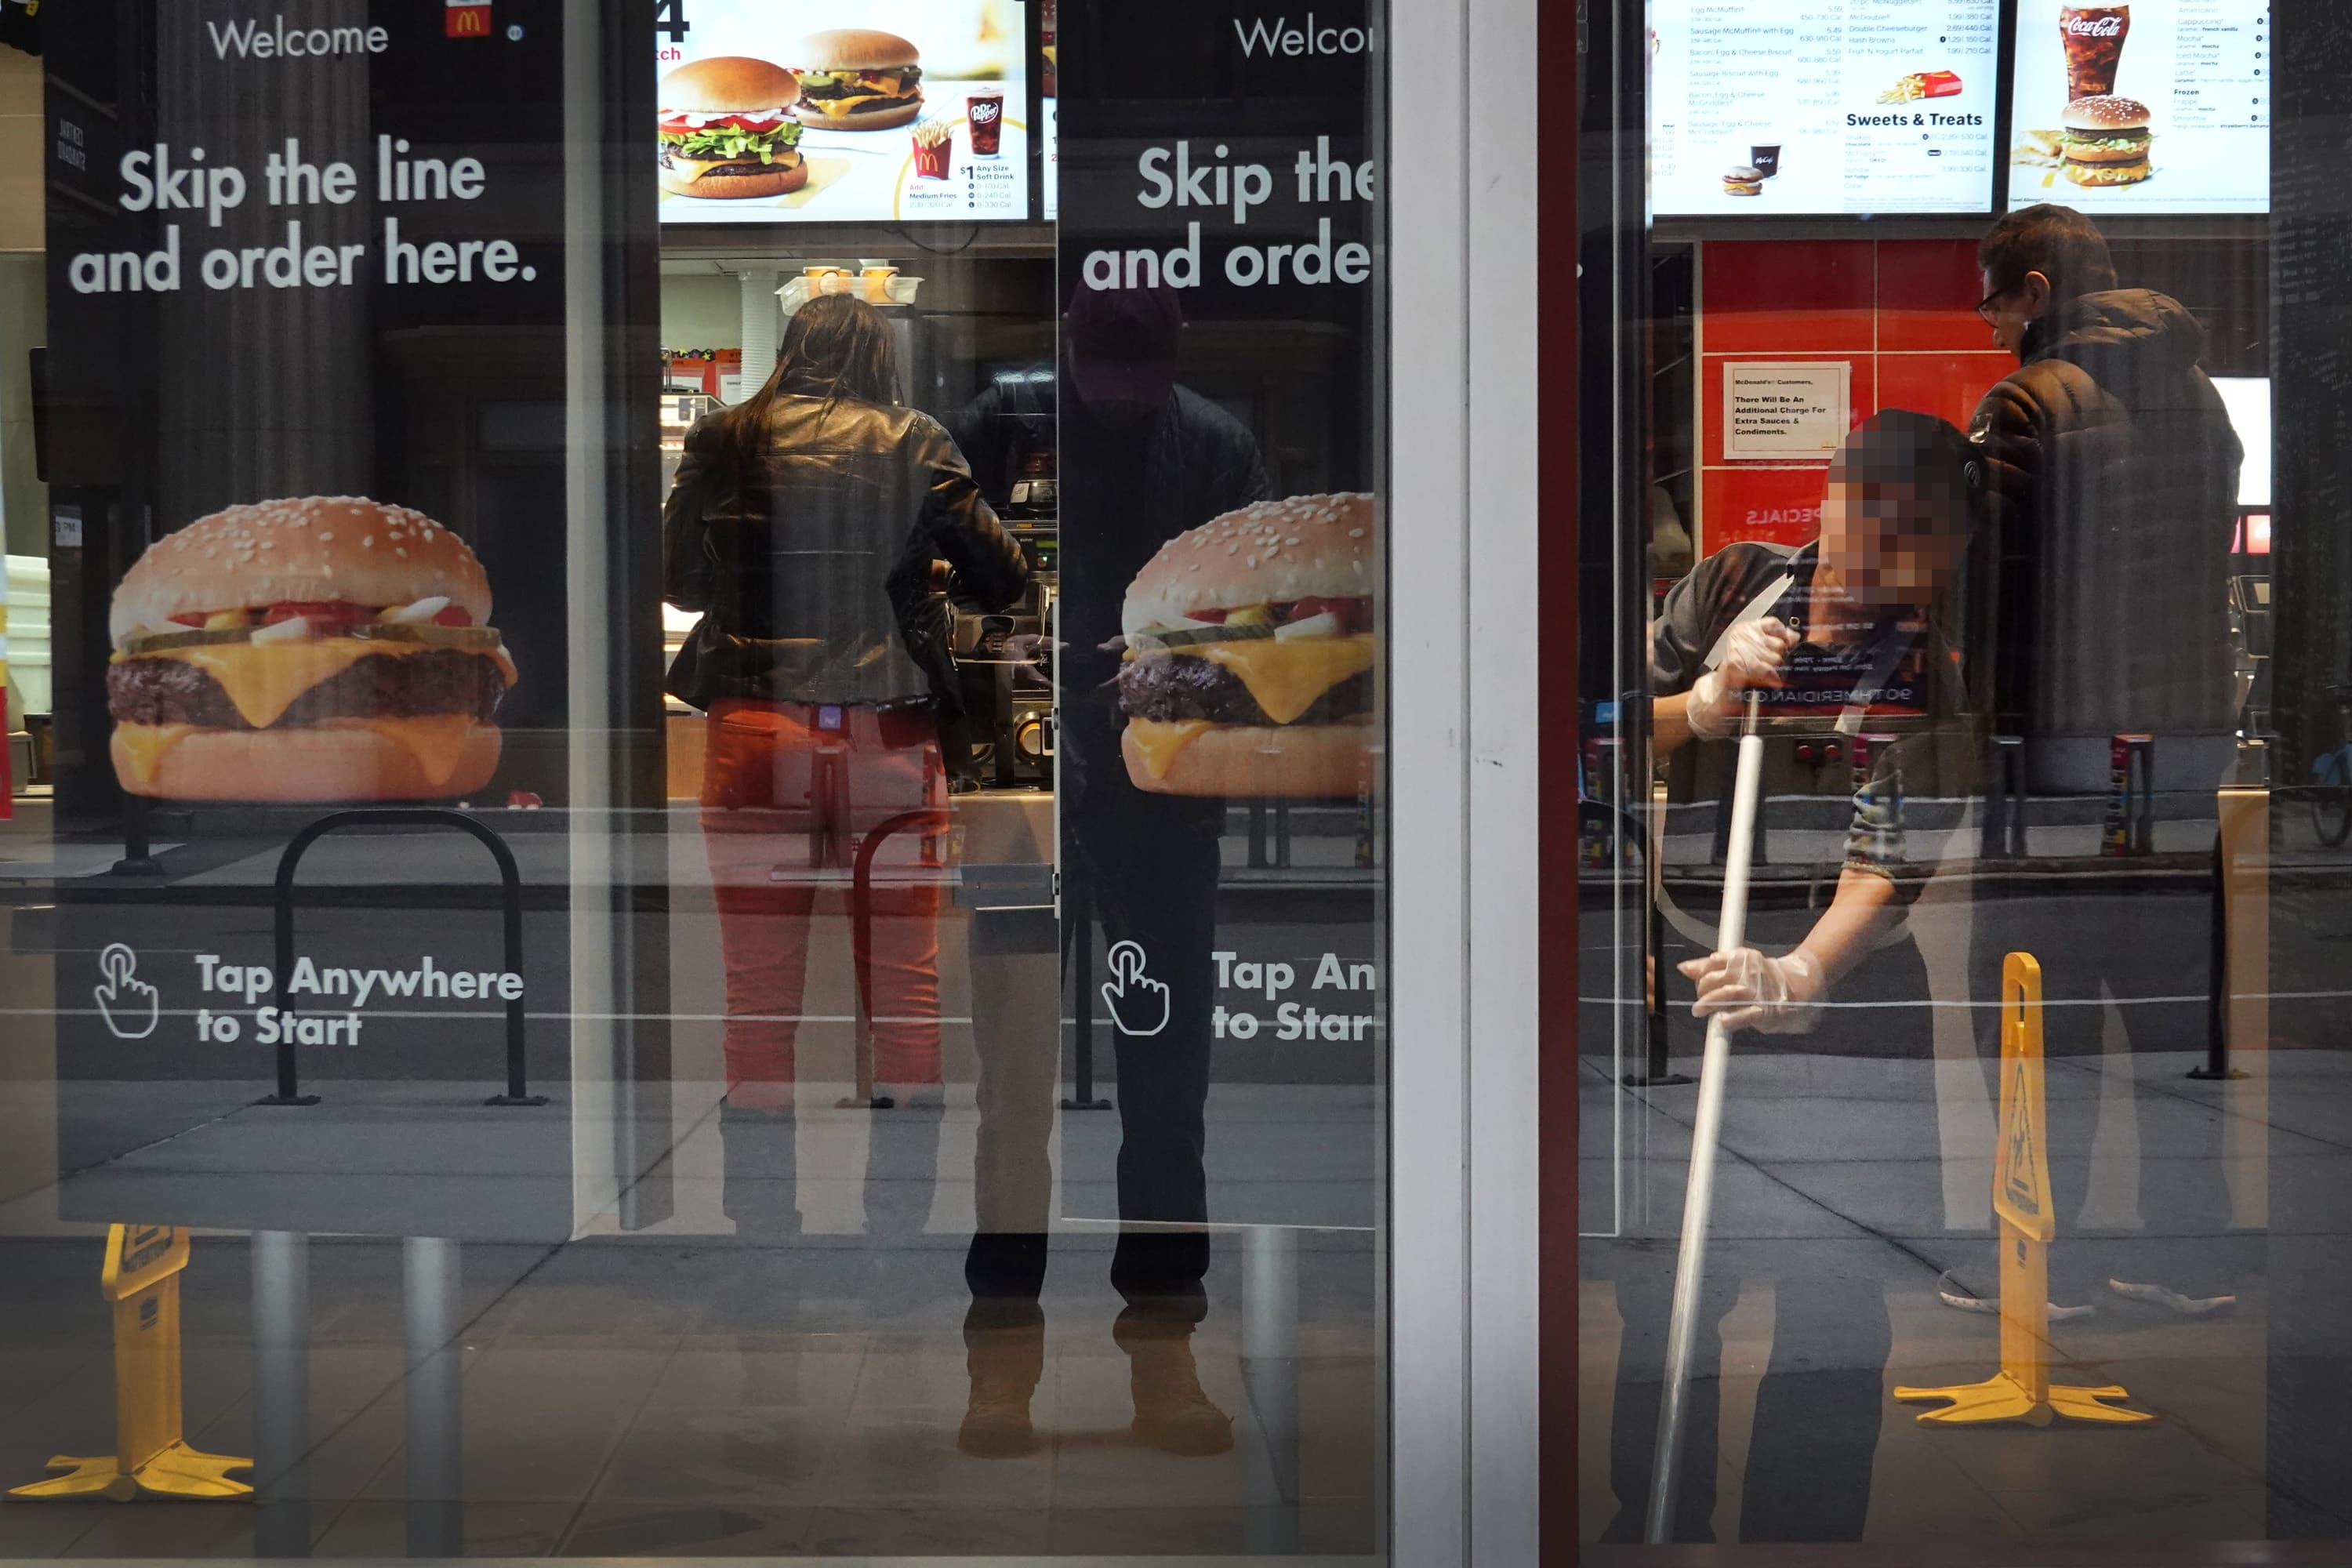 McDonald's is halting its U.S. reopening plans as coronavirus cases spike